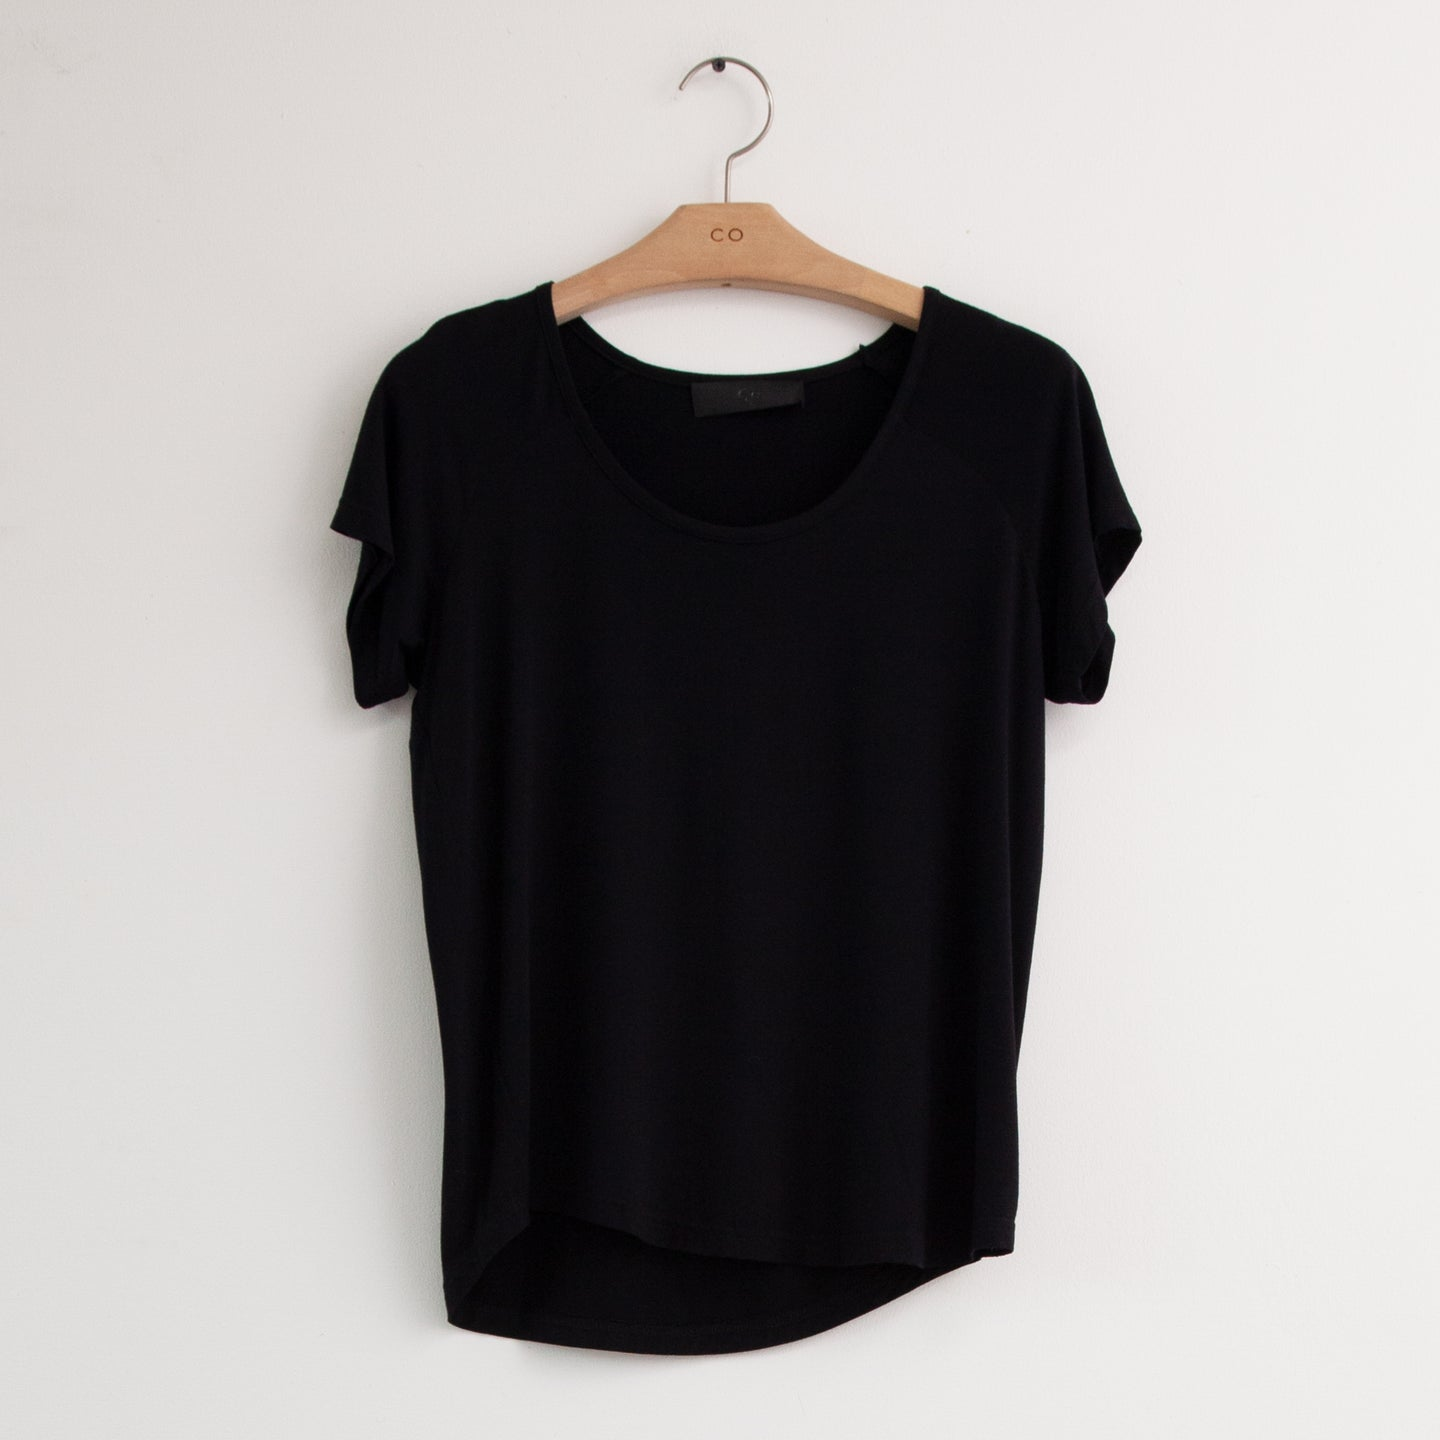 CO - Round neck t shirt in black cotton jersey